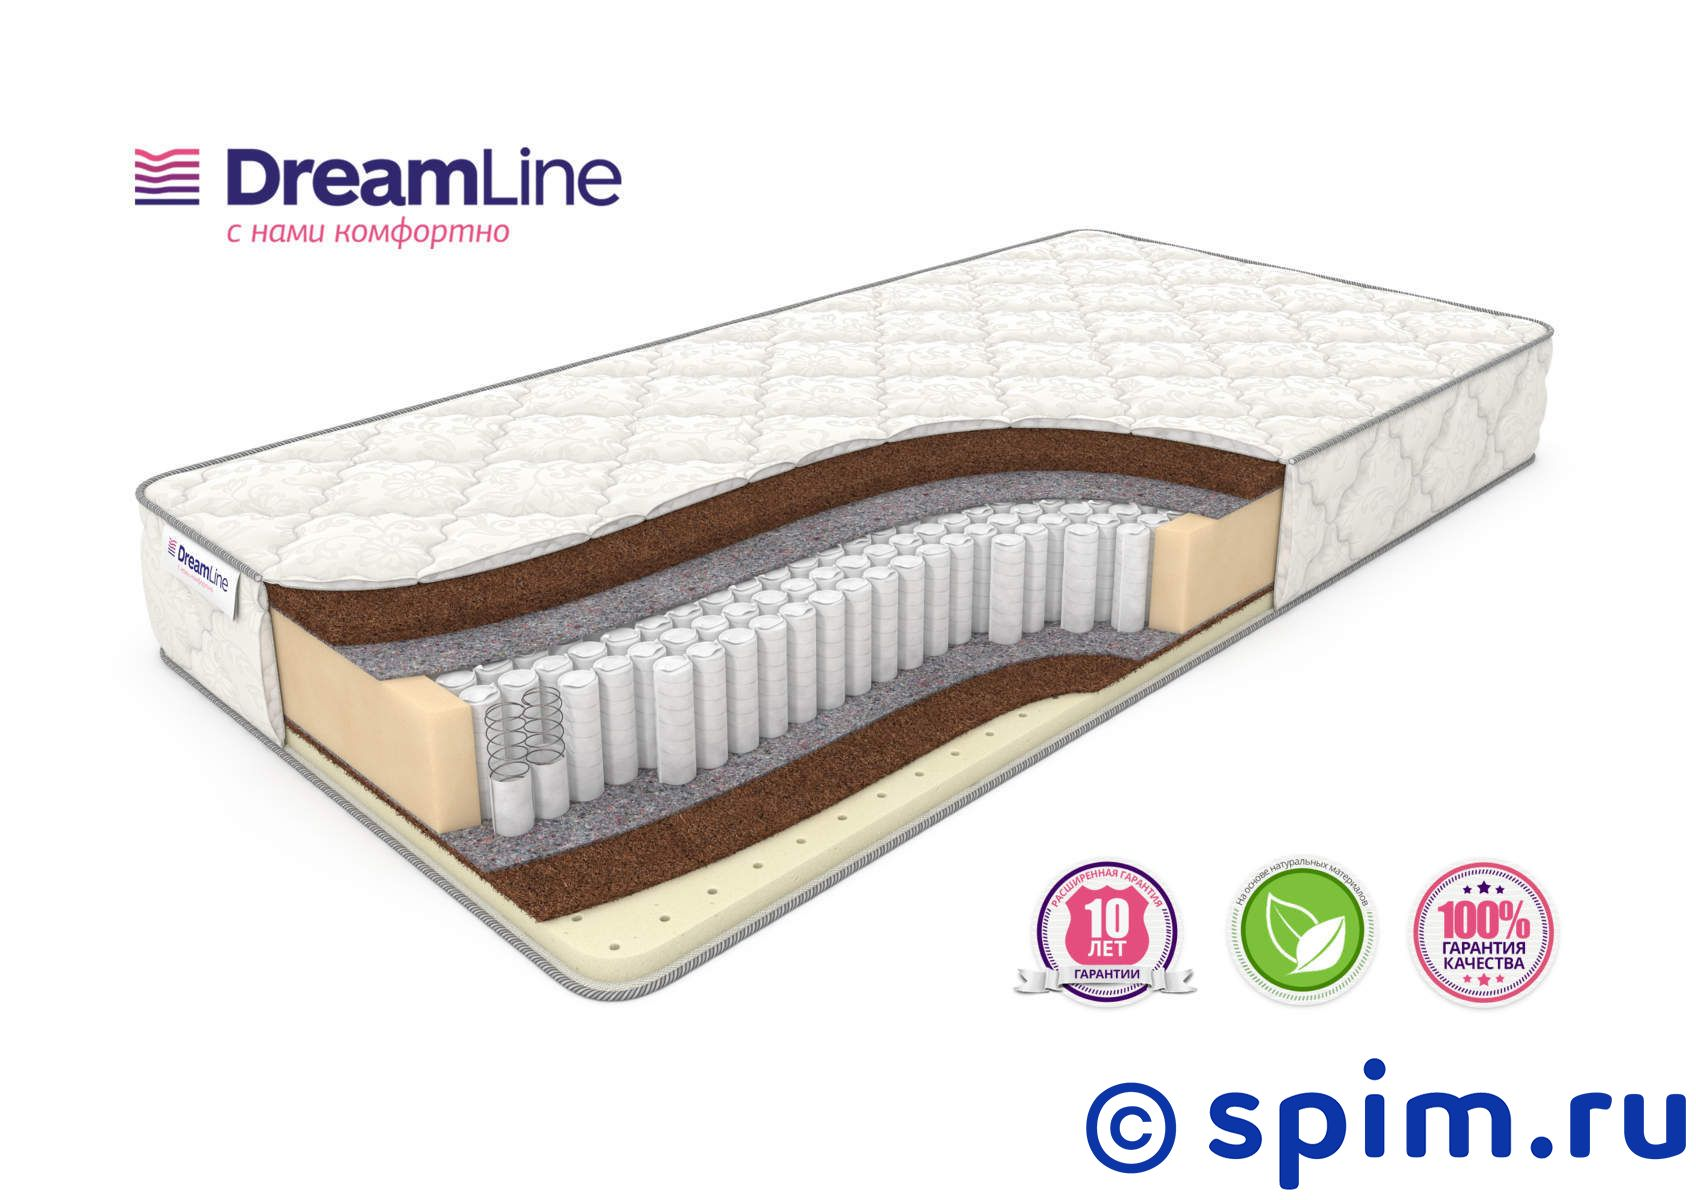 Матрас DreamLine SleepDream Hard S1000 180х195 см матрас dreamline kombi 2 s1000 150х195 см